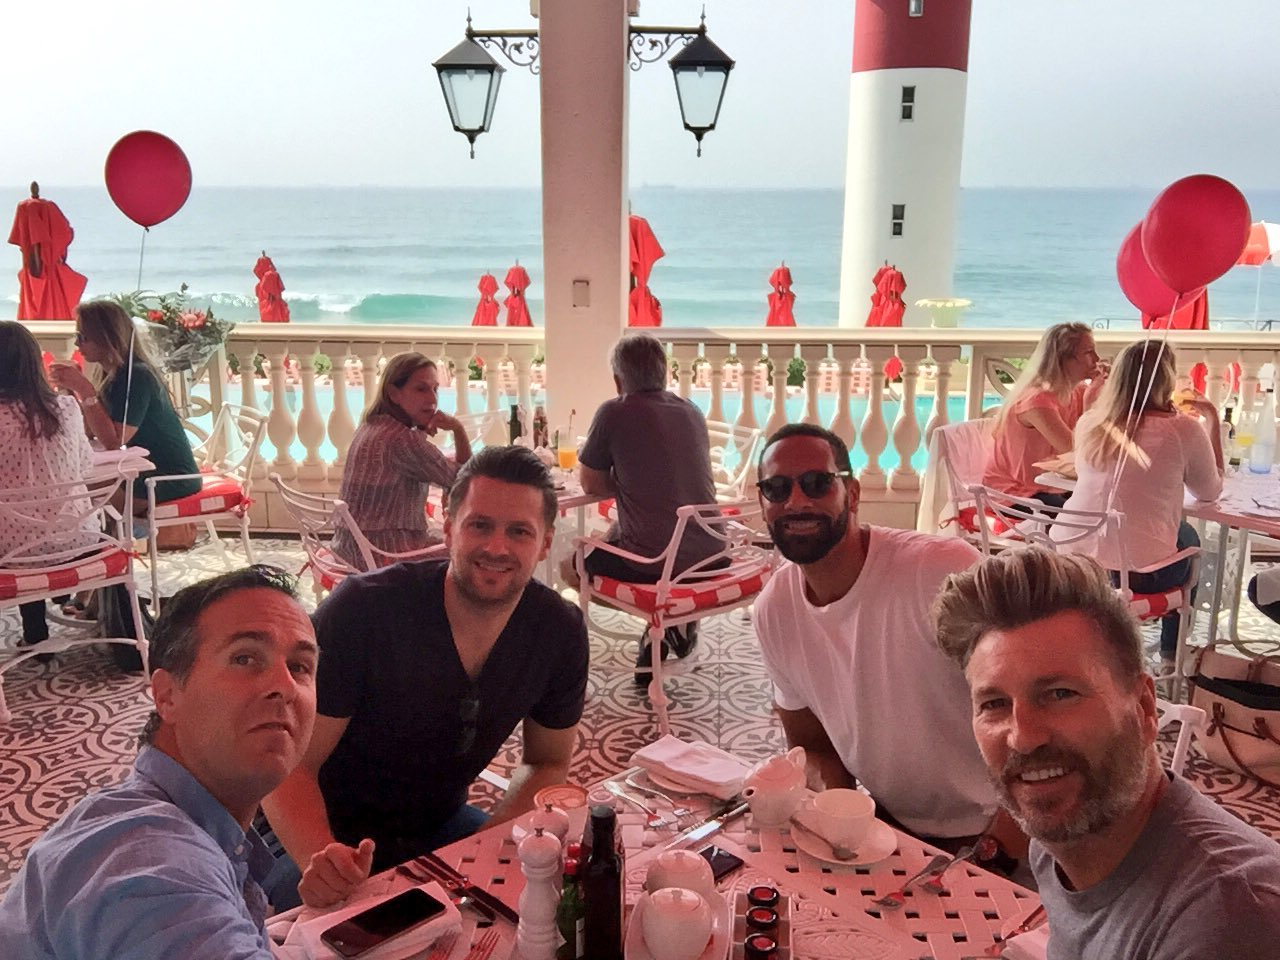 Sea views at breakfast this morning with the chaps @MichaelVaughan @RobbieSavage8 @_JMallen #Durban https://t.co/IalFjGAK1G